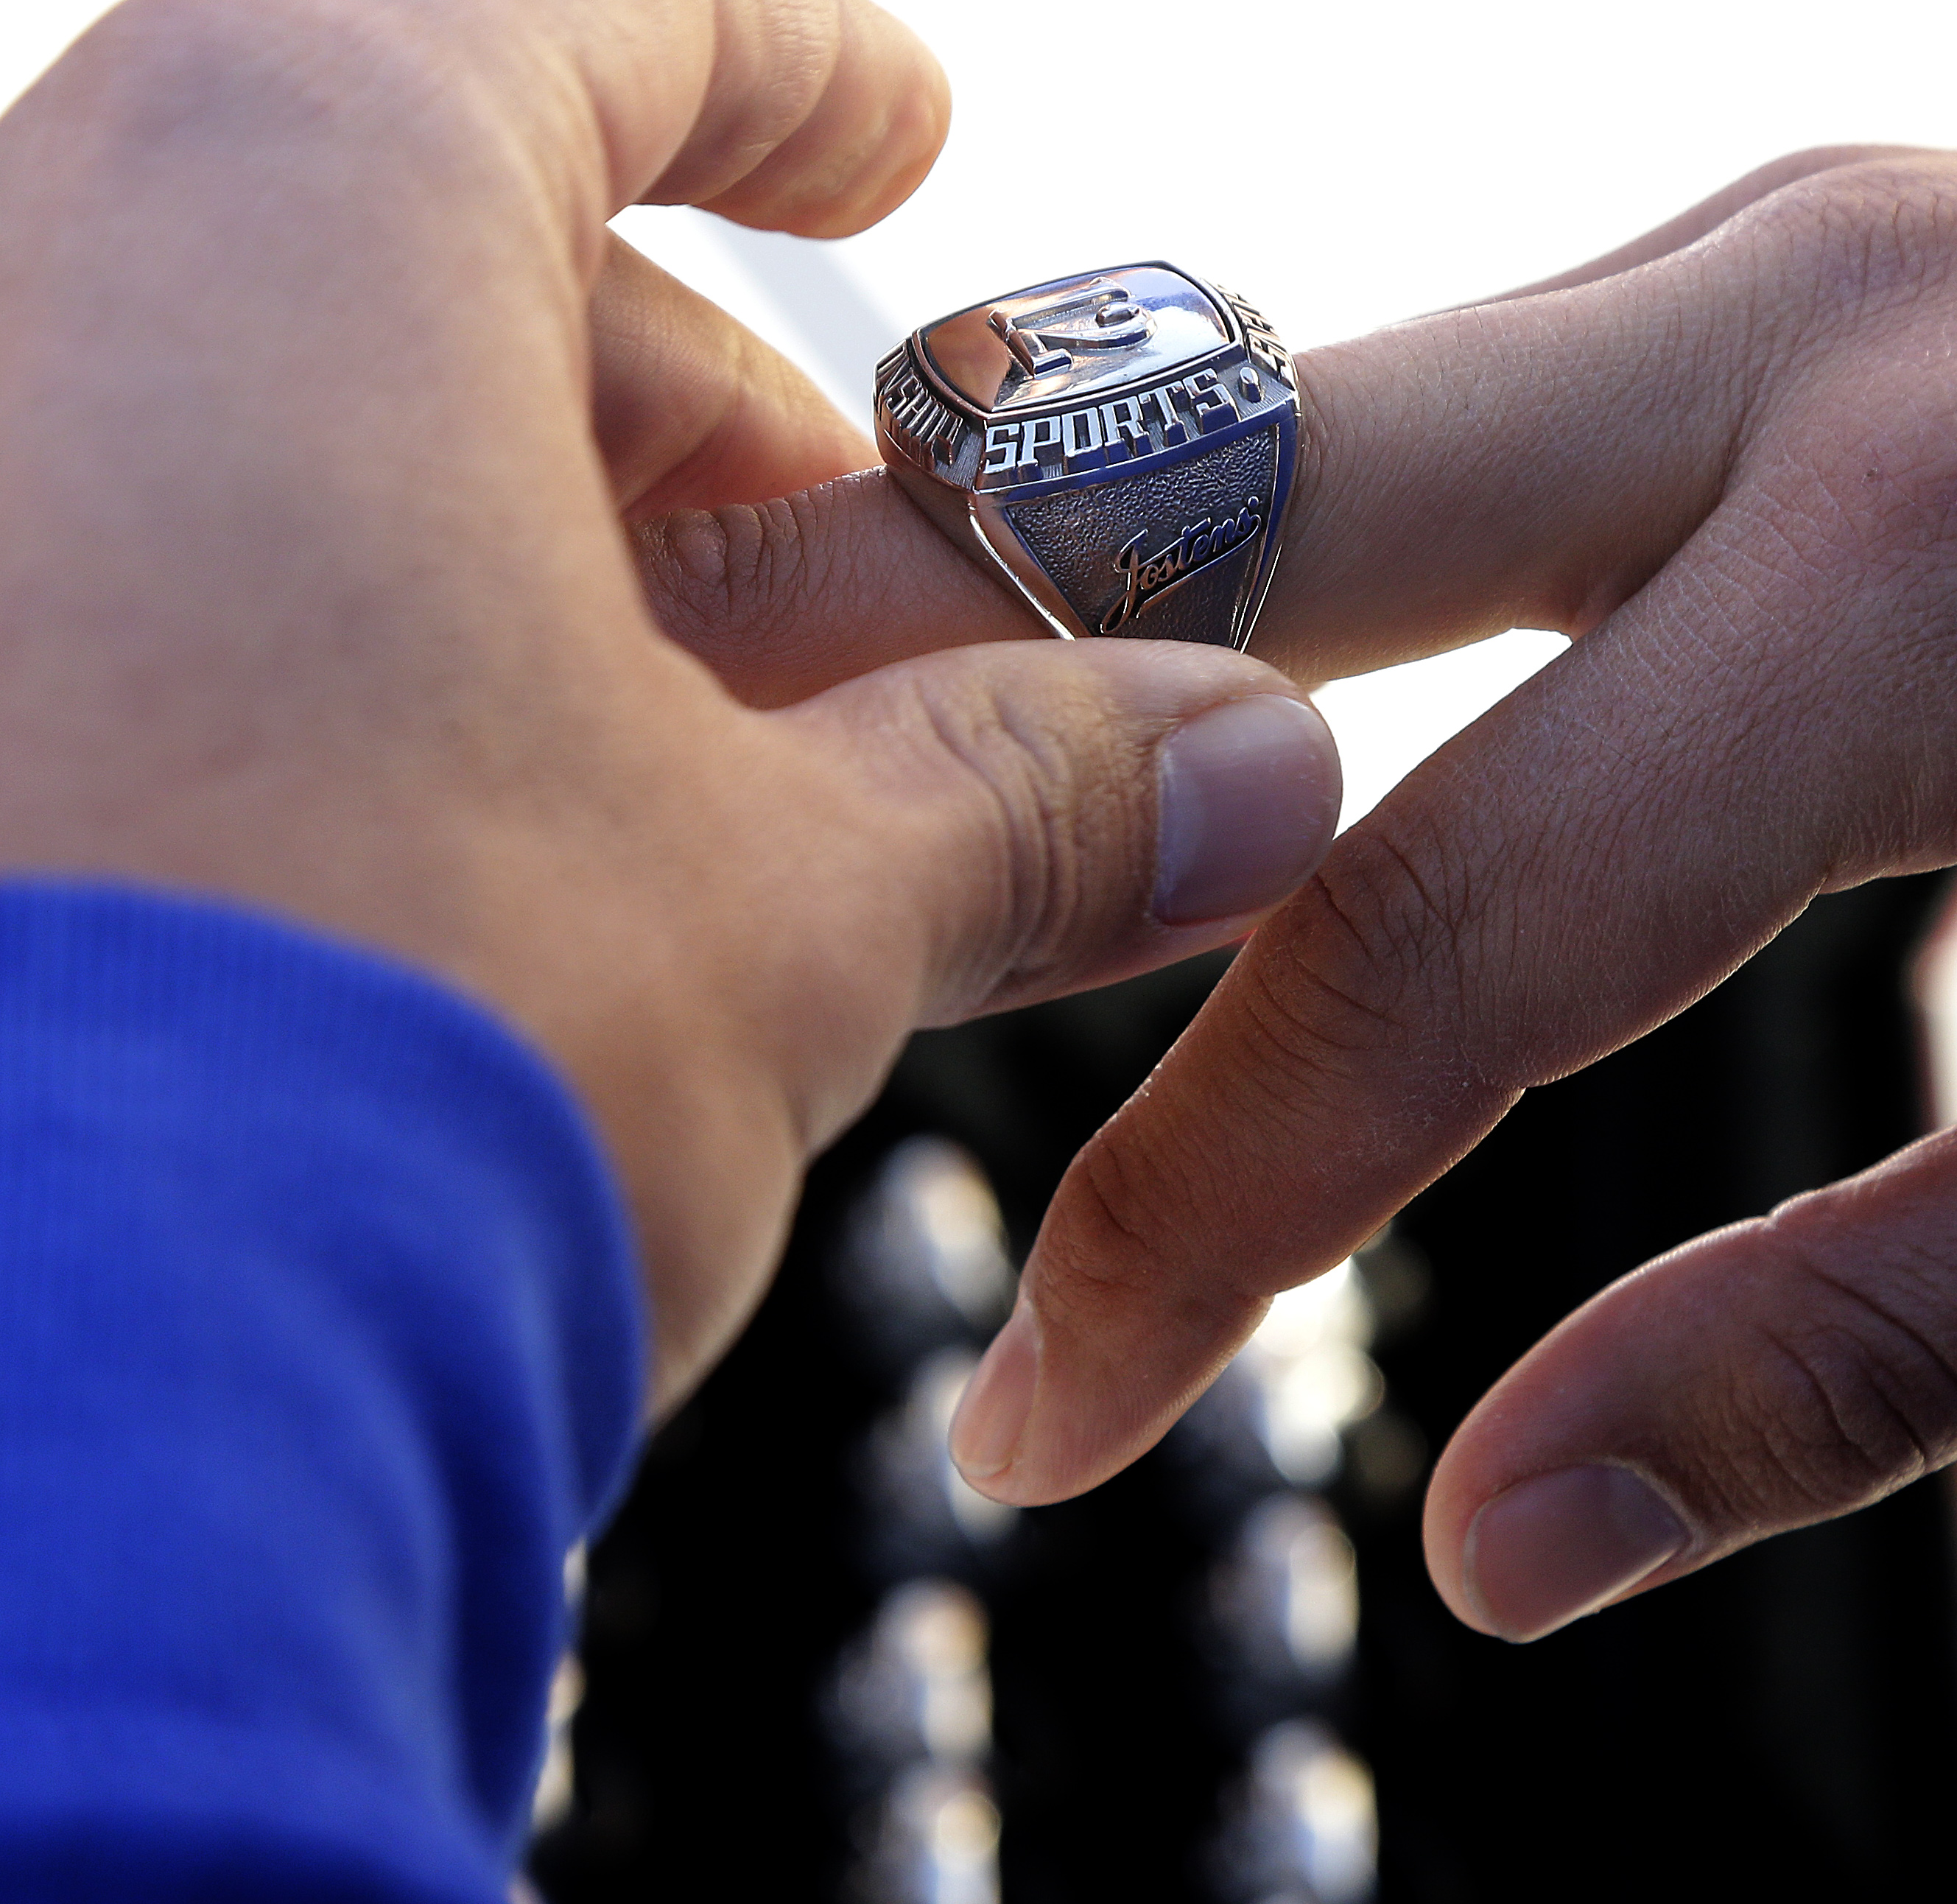 <div class='meta'><div class='origin-logo' data-origin='AP'></div><span class='caption-text' data-credit='AP Photo/Charlie Riedel'>Kansas City Royals' Jason Vargas is fitted for his World Series Championship ring during spring training baseball practice Tuesday, Feb. 23, 2016, in Surprise, Ariz.</span></div>